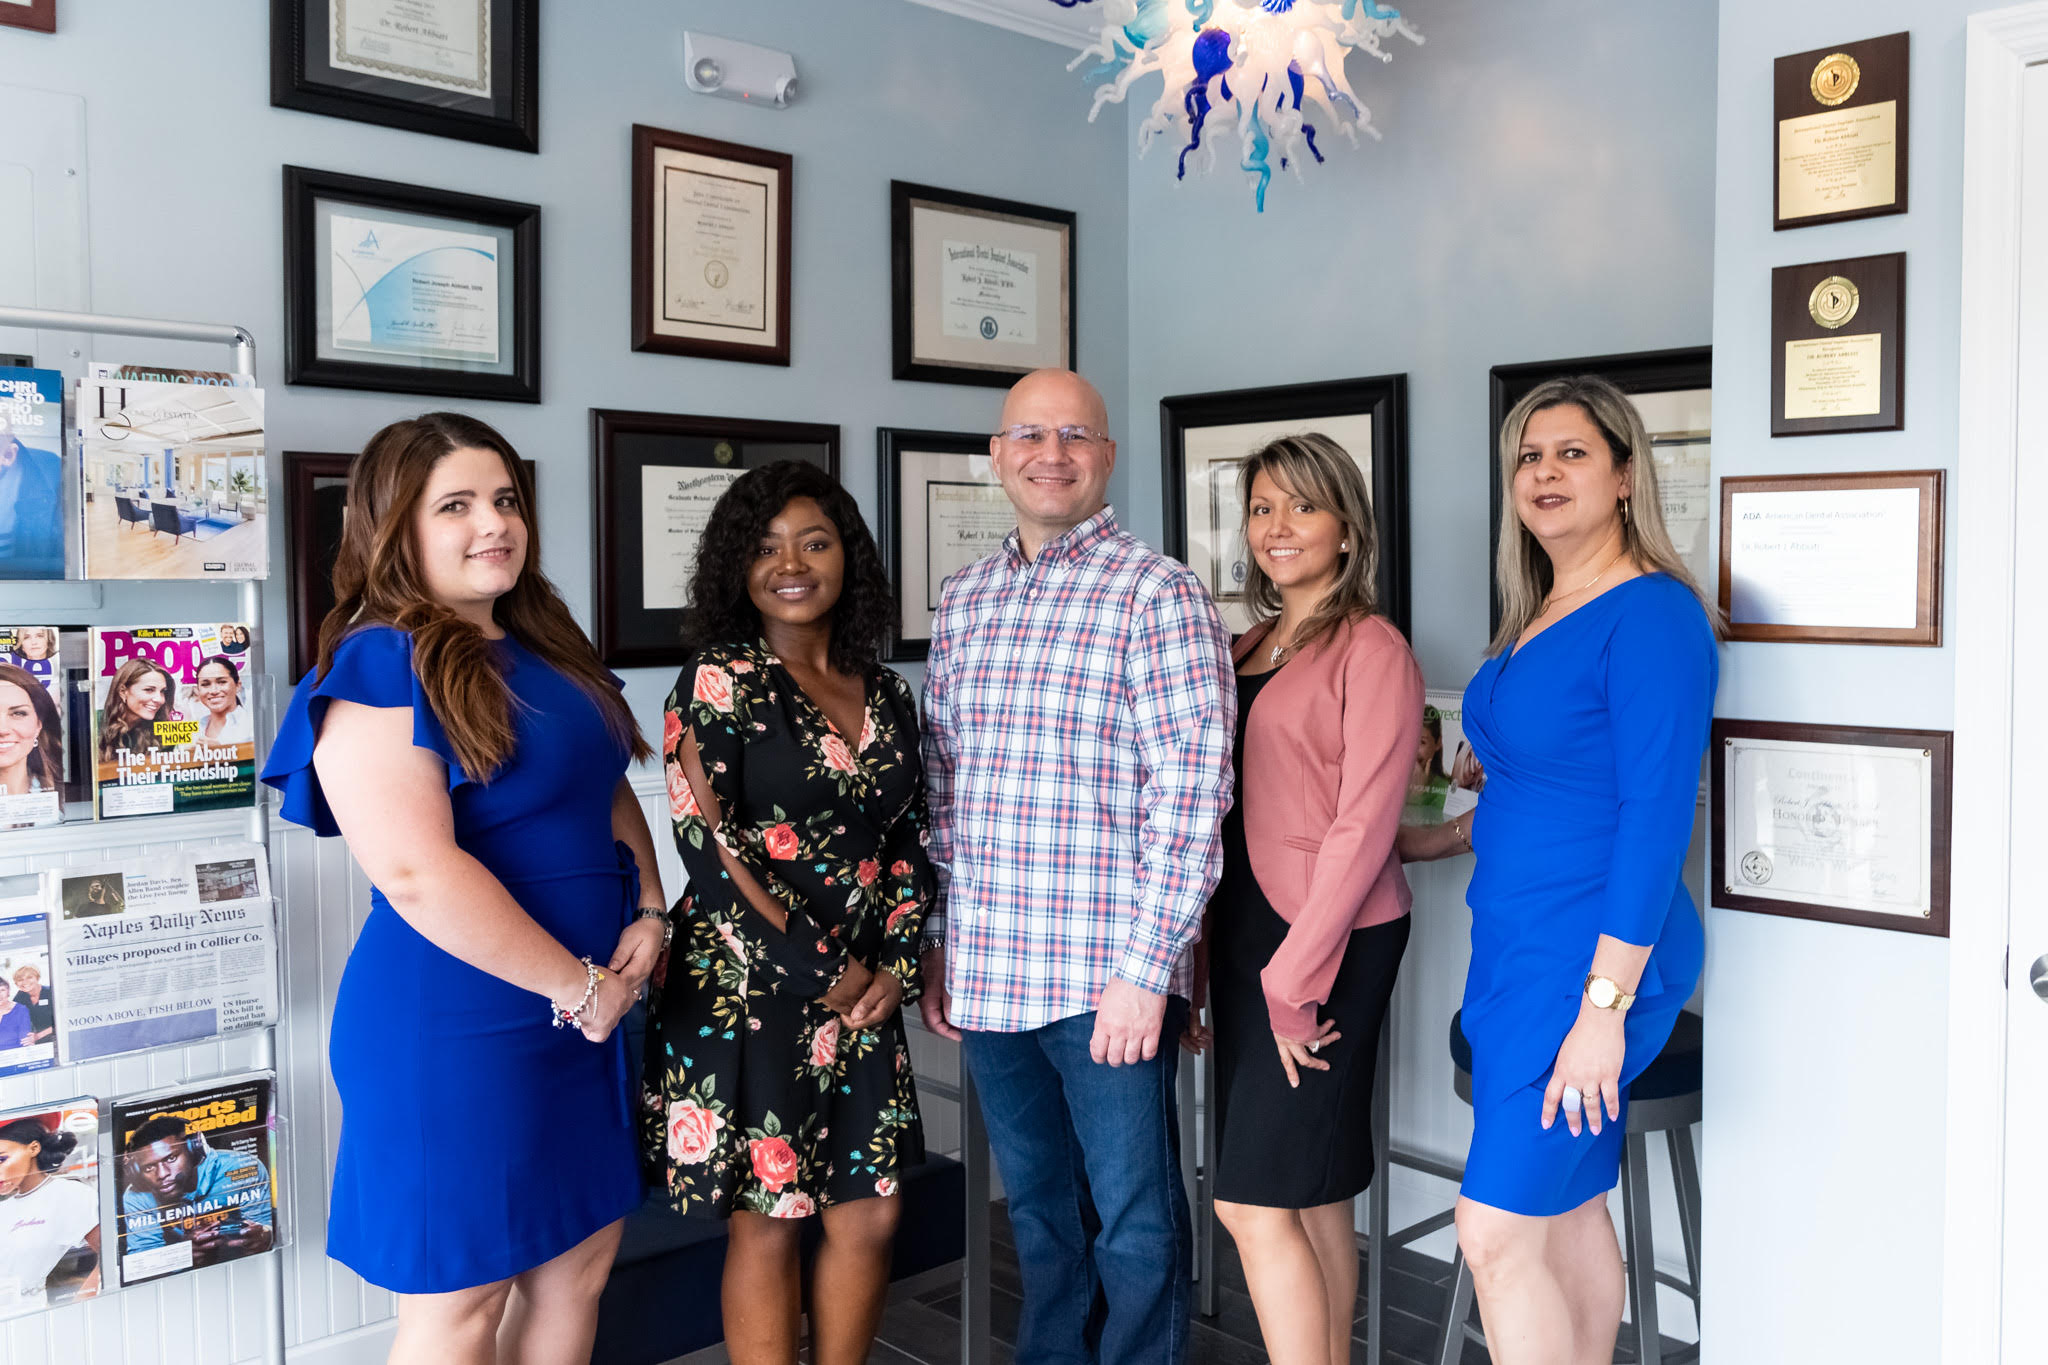 Island Paradise Dental, Dr. Robert J. Abbiati, DDS reviews | Cosmetic Dentists at 1120 N Collier Blvd #208 - Marco Island FL